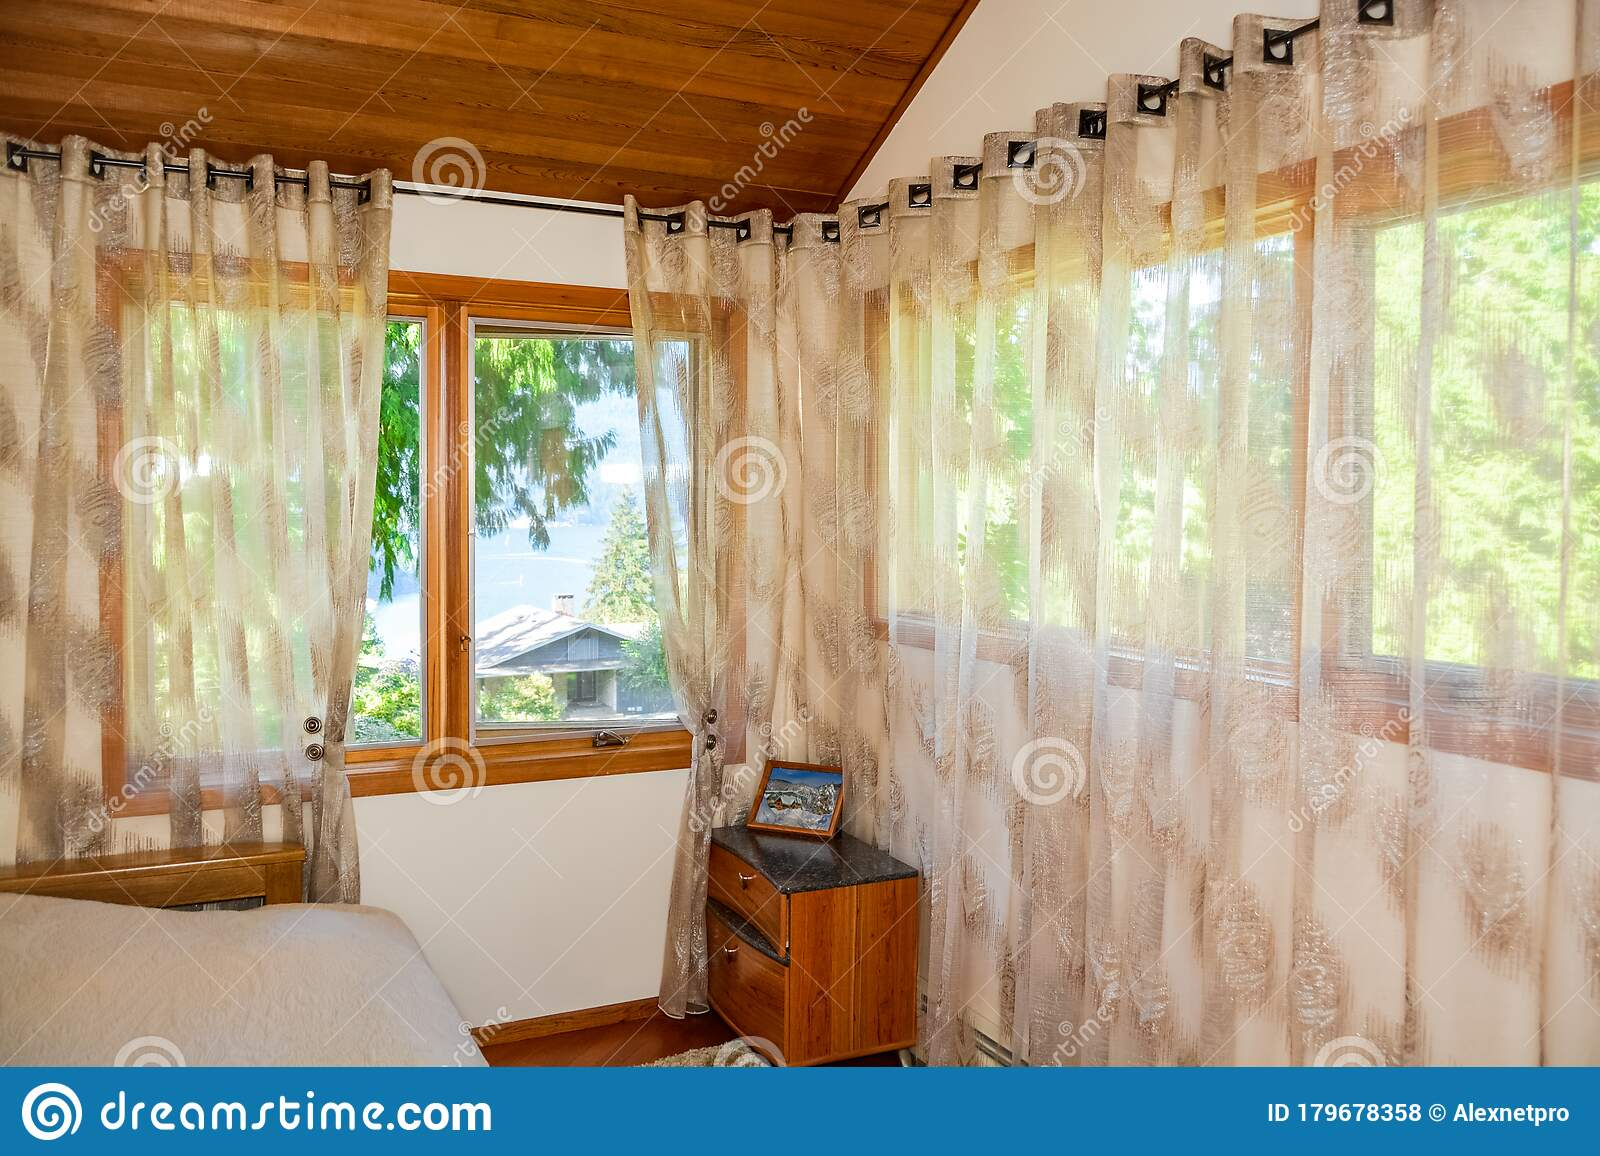 Wide Windows And Curtains In Small Bedroom With Ocean Bay View Stock Photo Image Of Real Peaceful 179678358